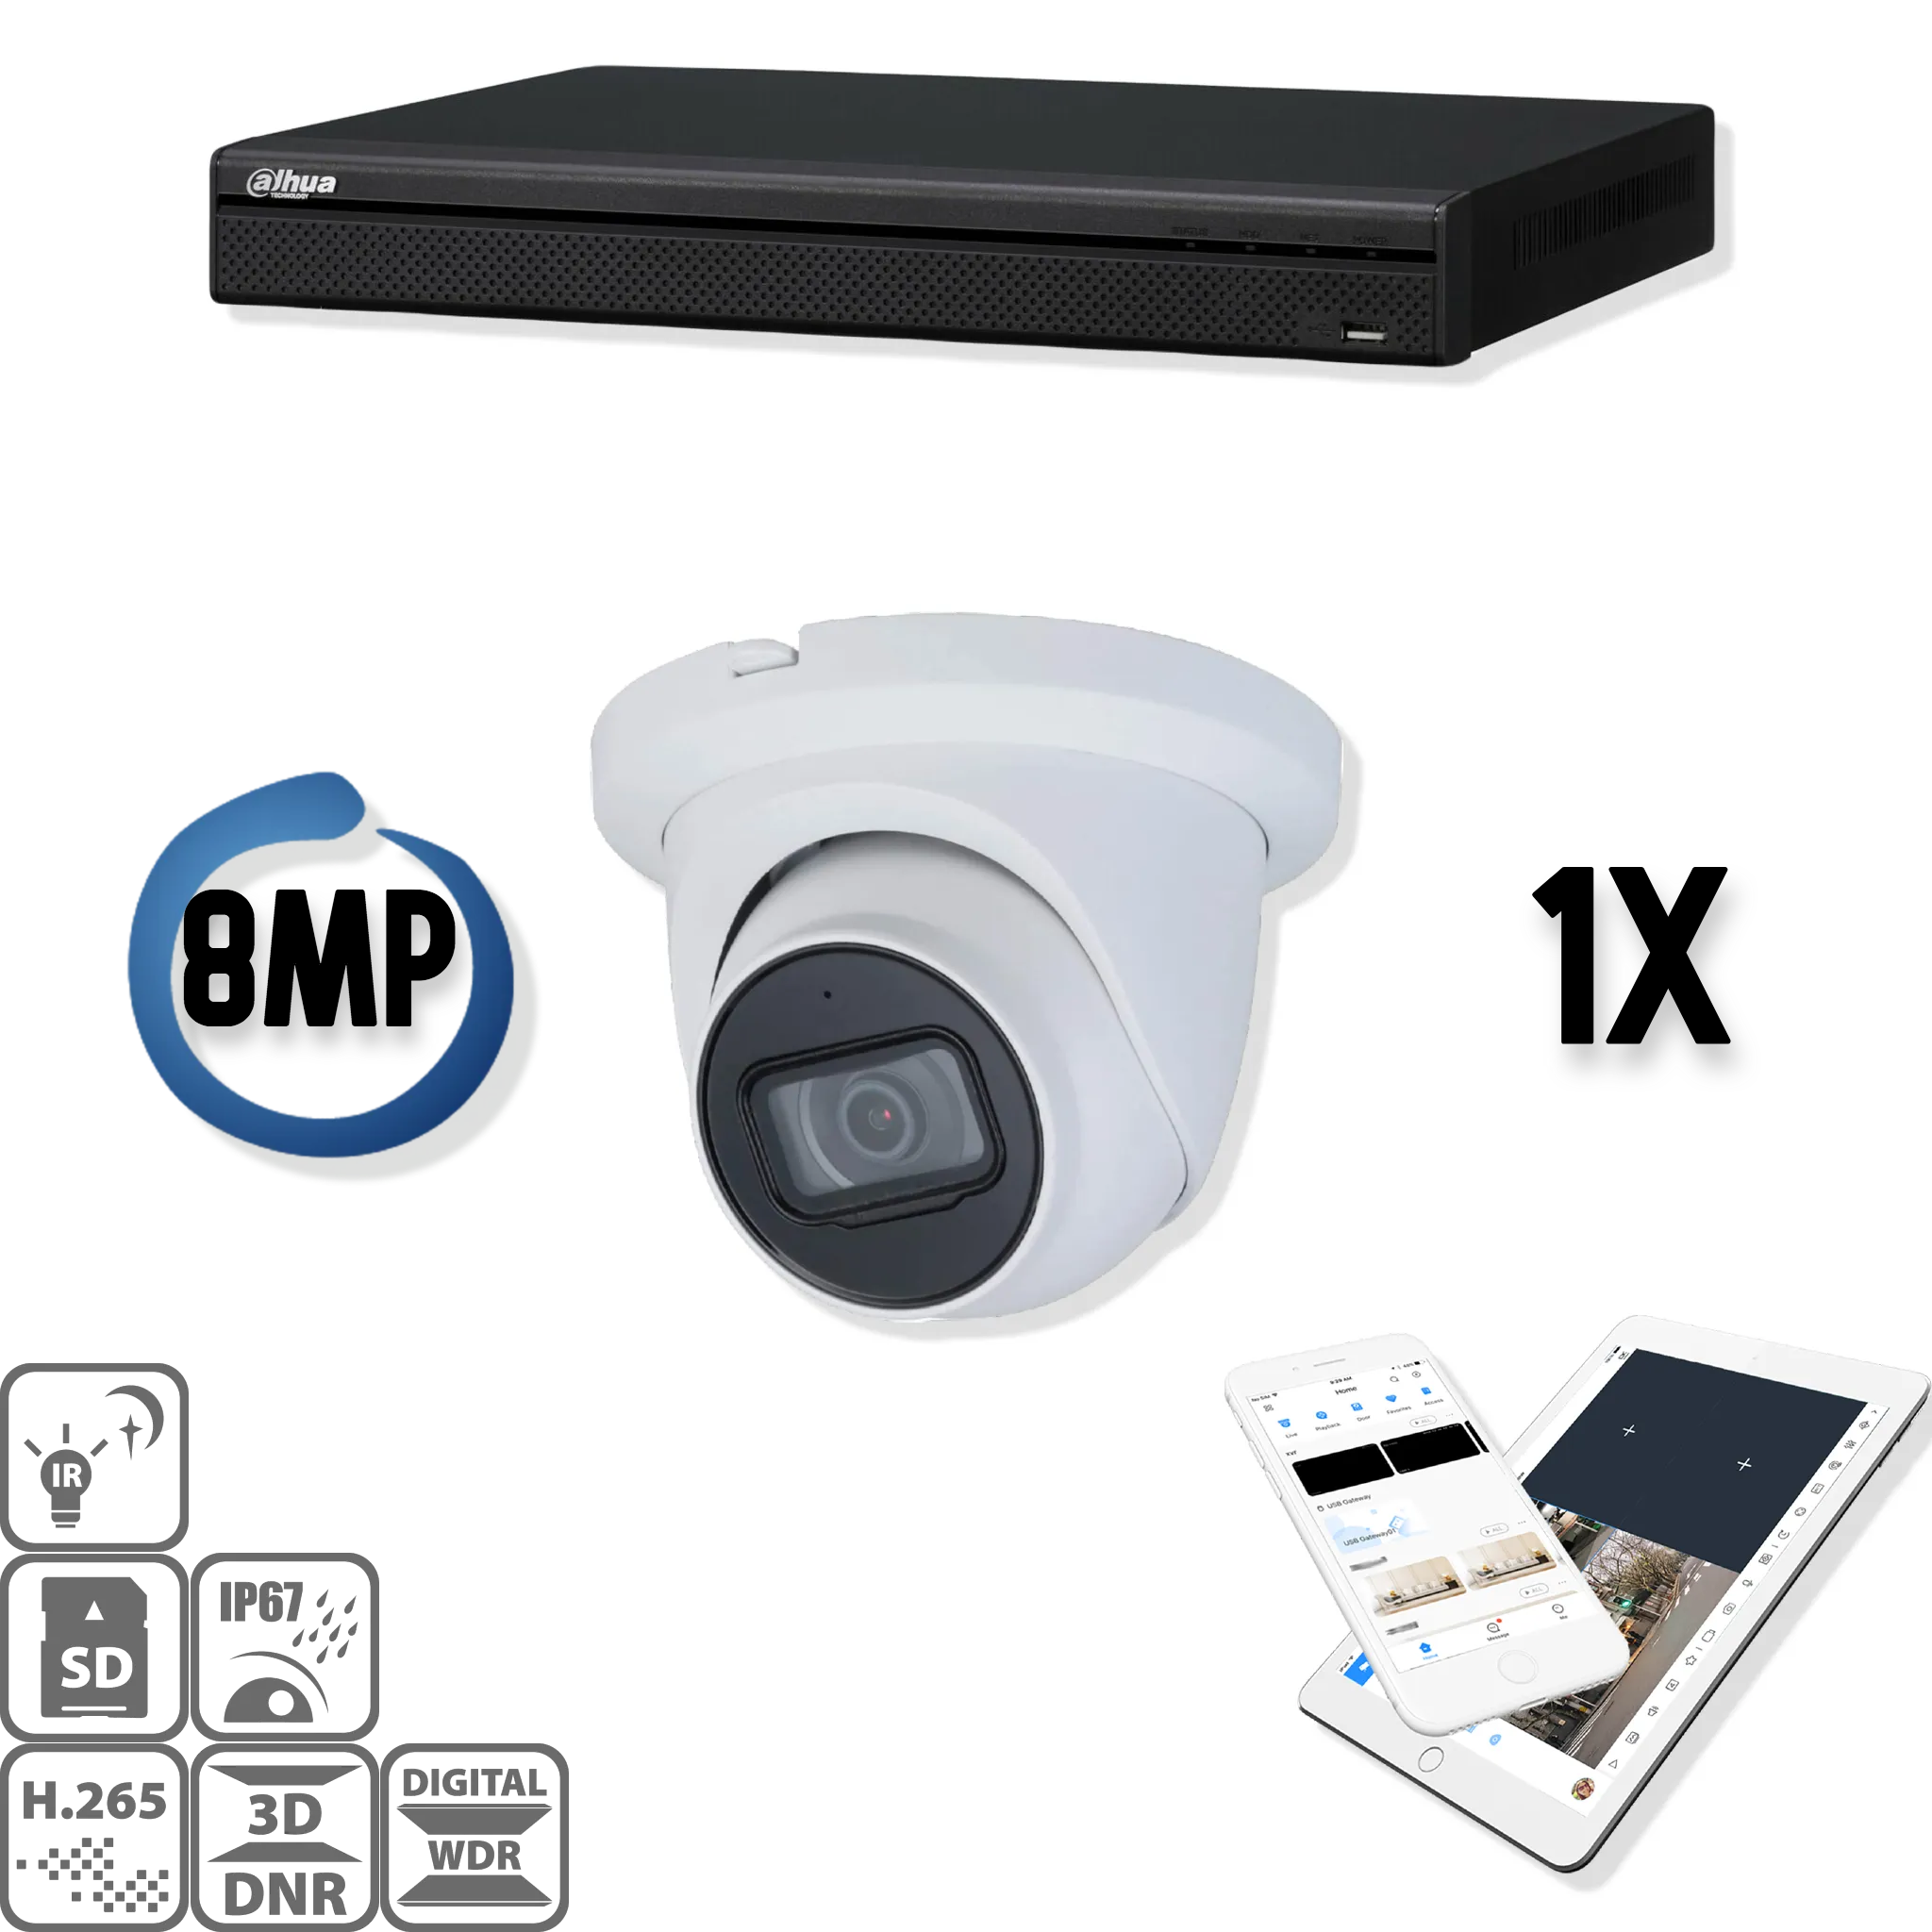 A set with a special camera with extra good night vision! Separated infrared, so no more problems with infrared reflection due to contaminated glass! The Dahua IP kit 1x Eyball 8MP Full HD camera security set contains 1 IP Eyeball camera, which is suitabl